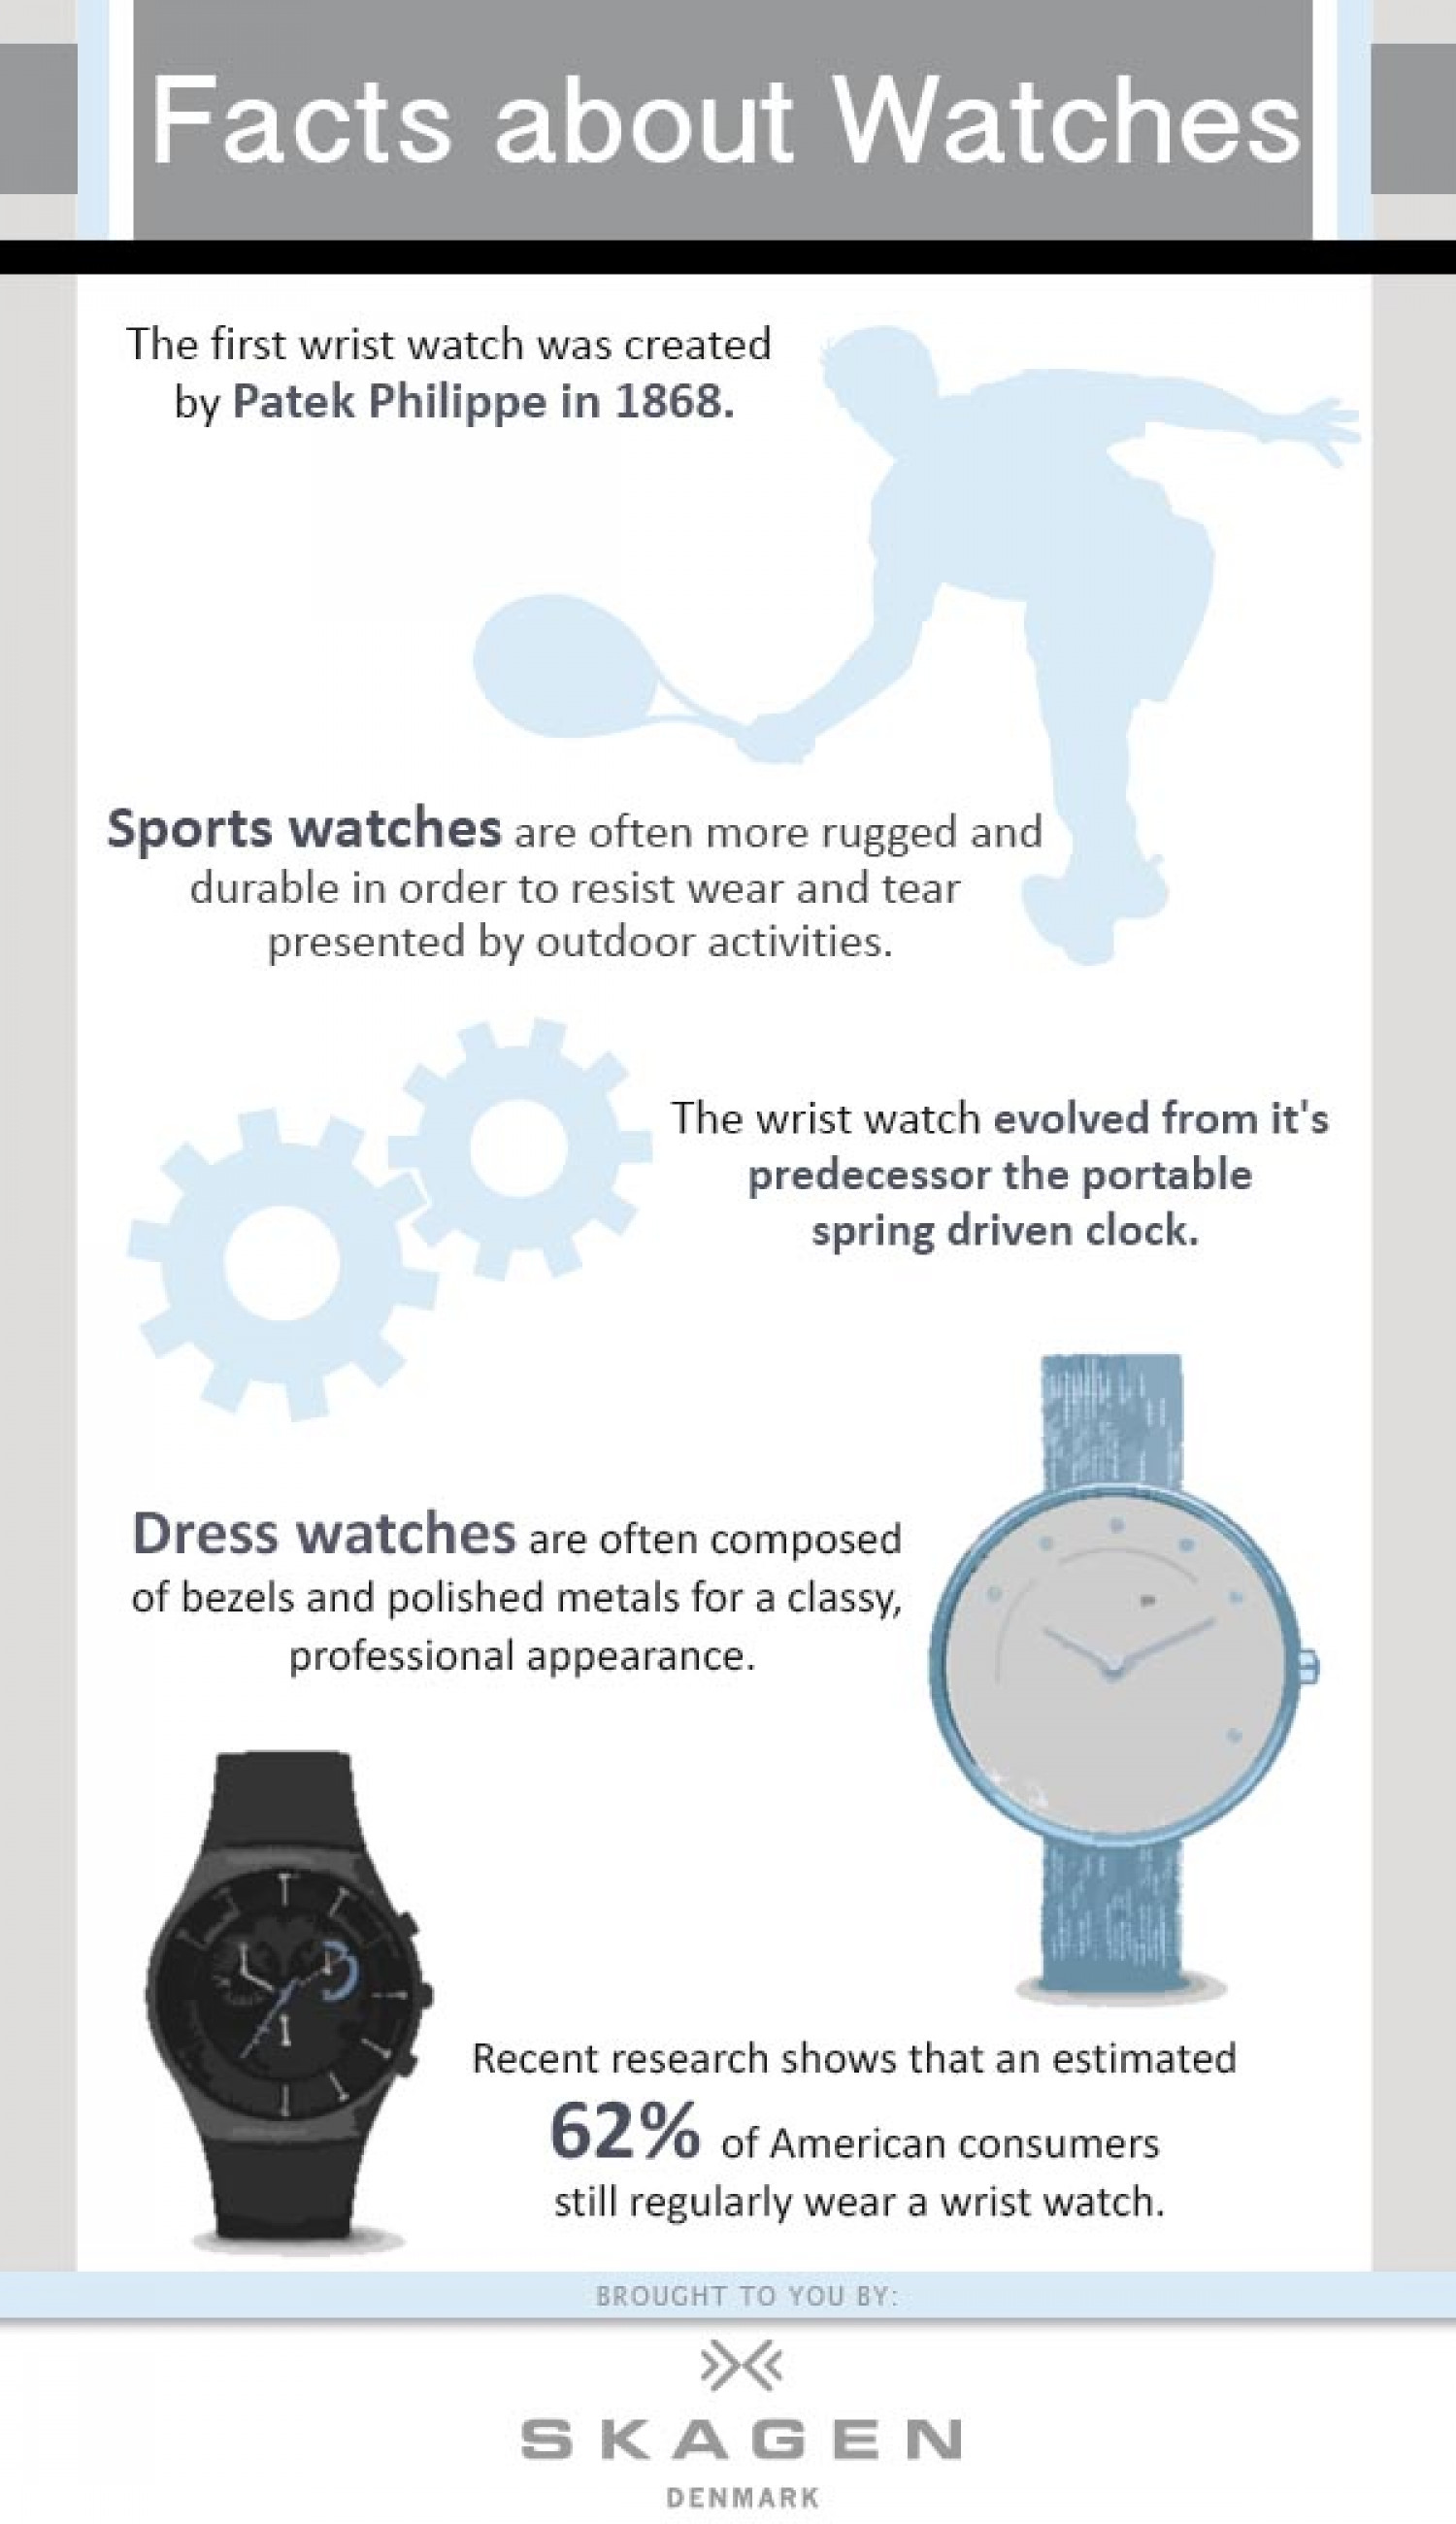 Facts About Watches Infographic